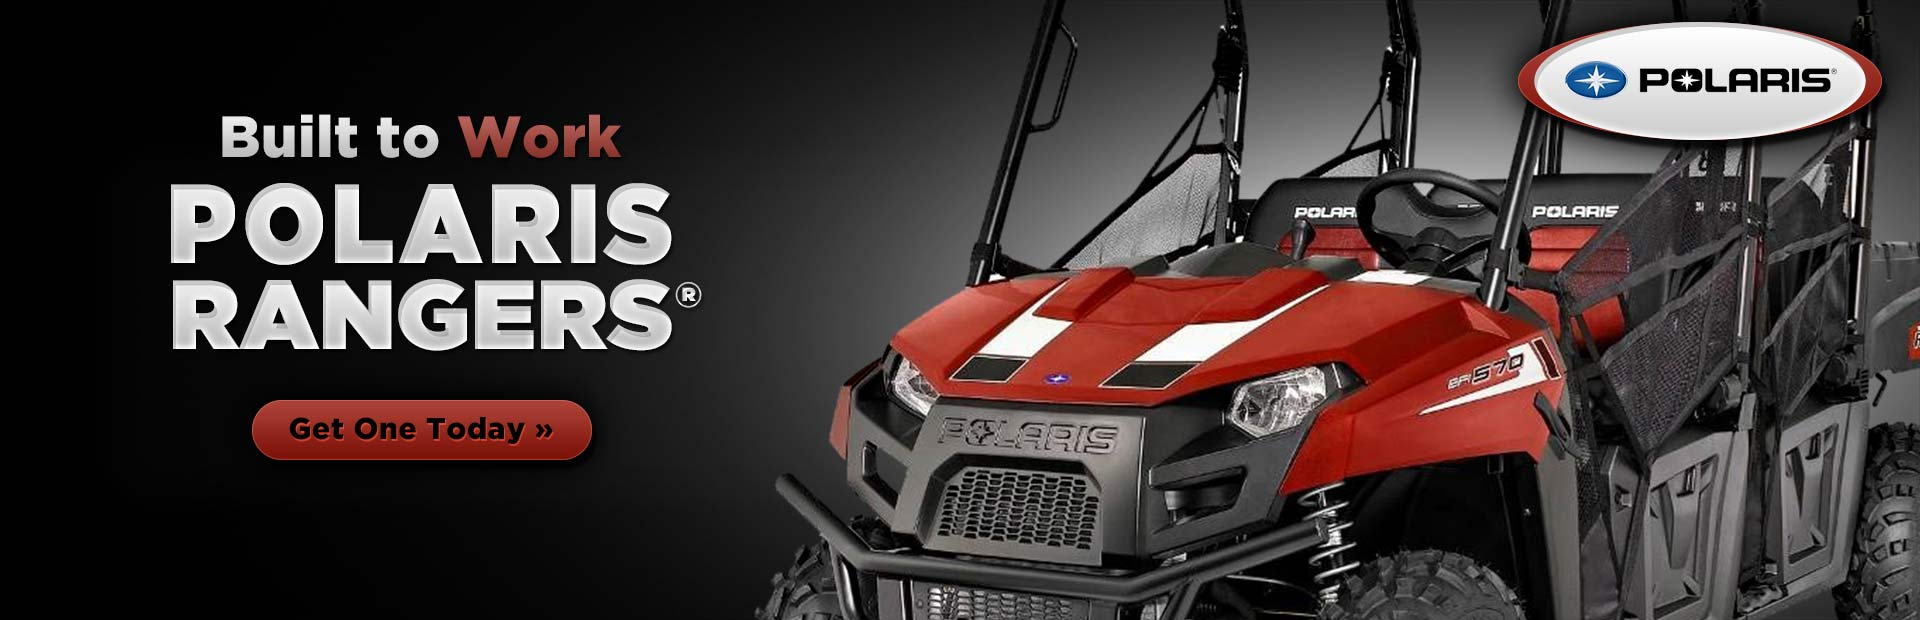 Masmotosports Provides Premium Motorsports Products And Services In Yamaha Rhino 450 Fuel Filter Polaris Rangers Click Here To Check Out The Entire Lineup Online